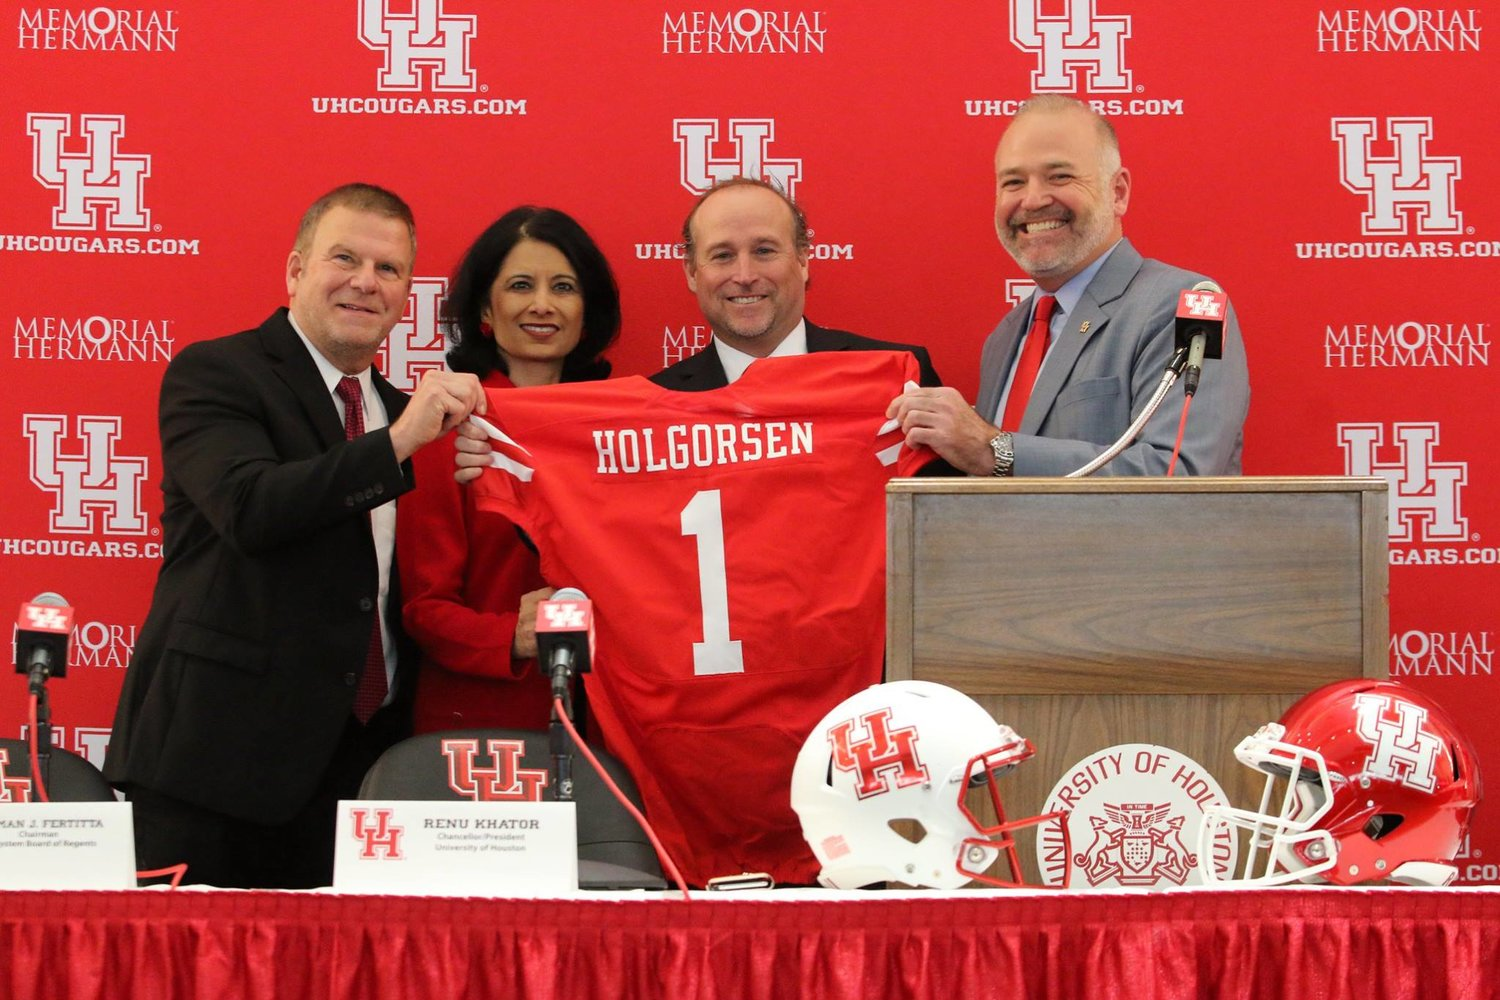 Dana Holgorsen was unveiled as the Cougars new head coach last week with reports saying he's agreed to a five-year, $20 million contract, making him the highest paid coach non-power conference school ever.